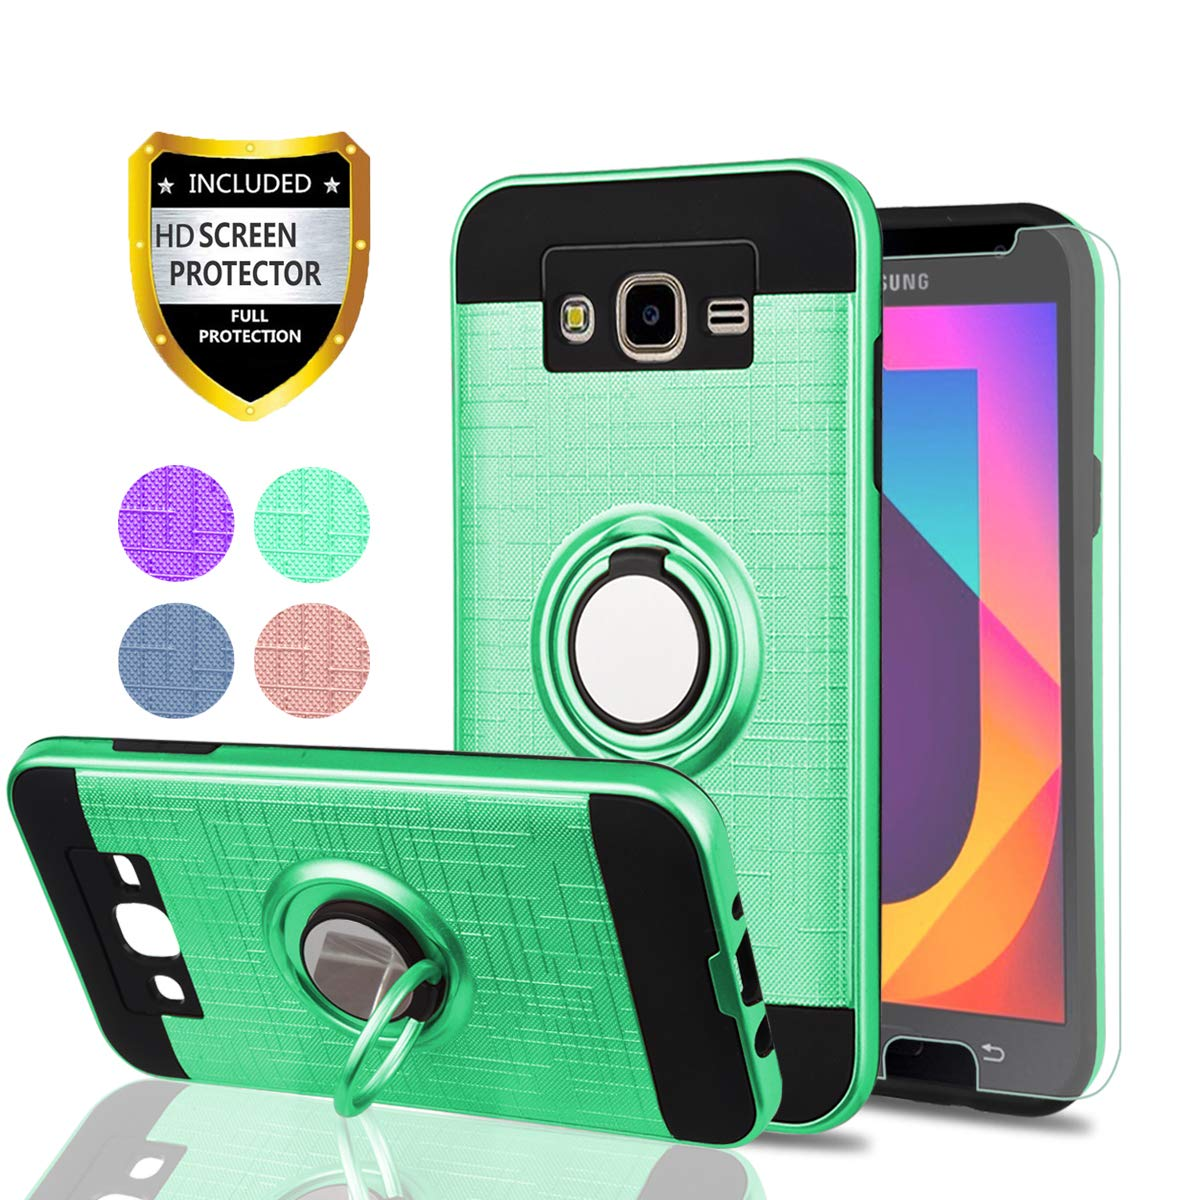 Galaxy J7 2015 Case,J7 NEO Case with HD Phone Screen Protector,YmhxcY 360 Degree Rotating Ring /& Bracket Dual Layer Resistant Back Cover for Samsung Galaxy J7 J700 2015-ZH Rose Gold